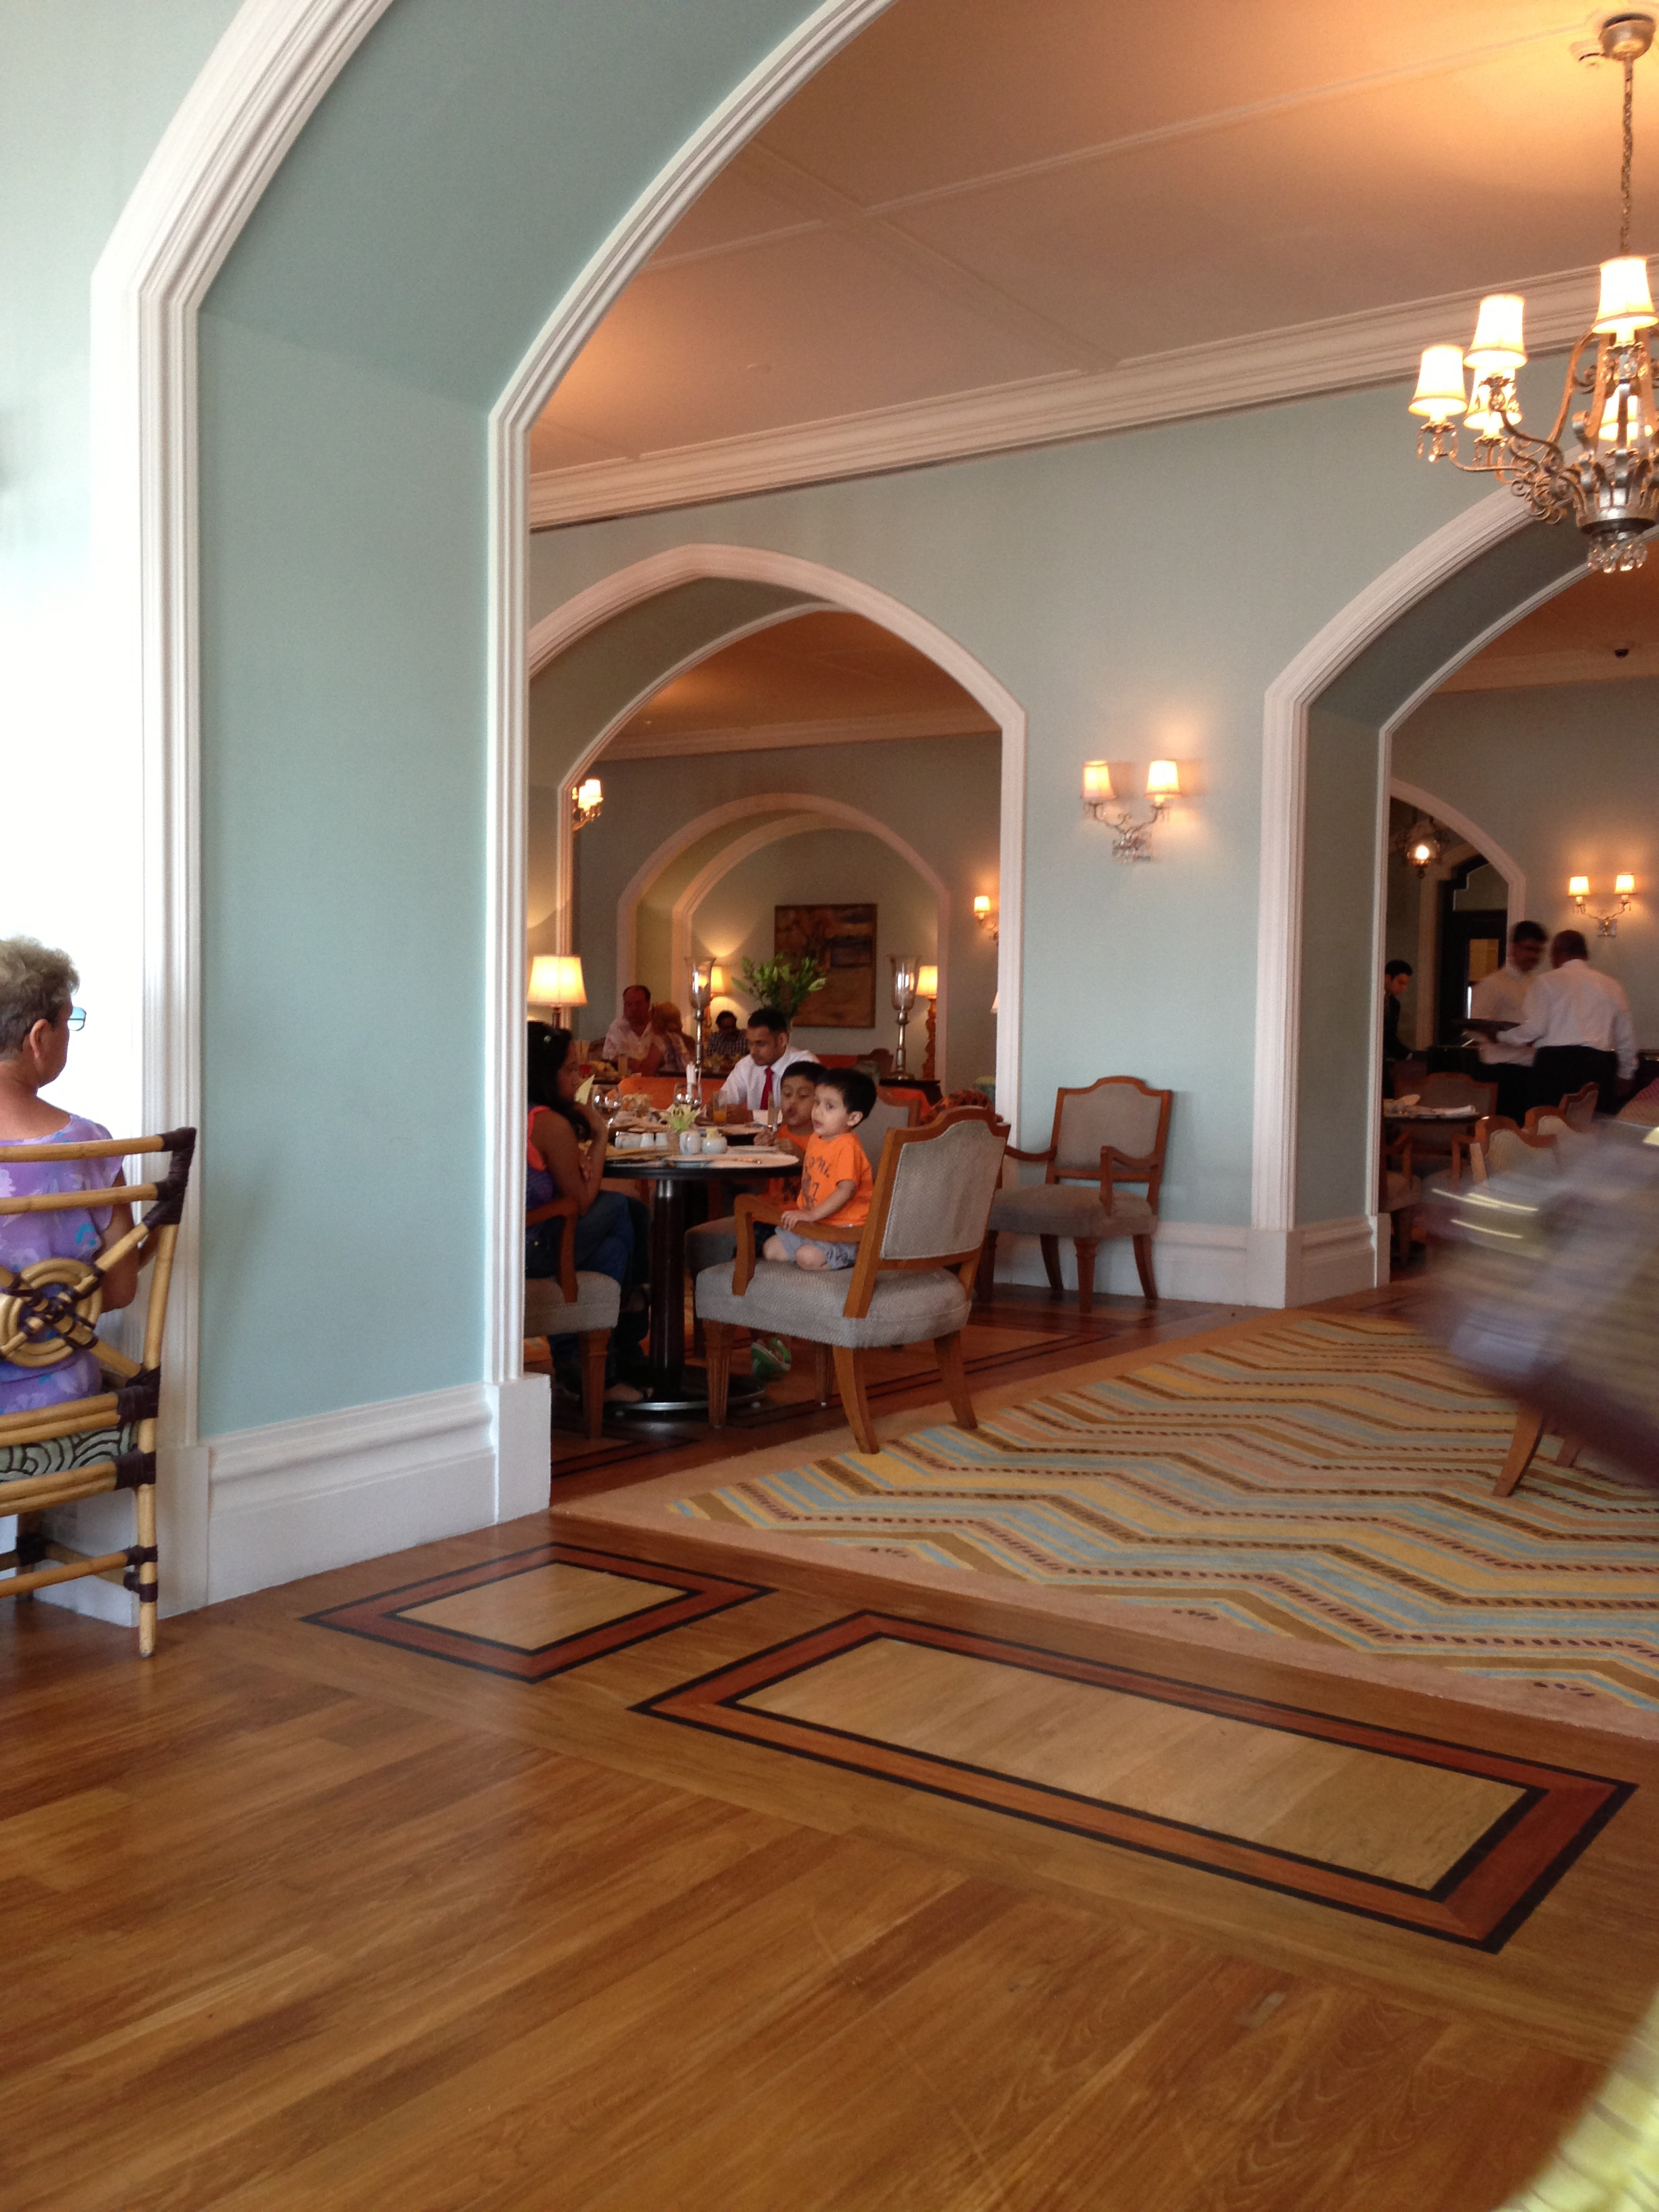 Tea Time at the Sea Lounge at the Taj — love the wall color!!!